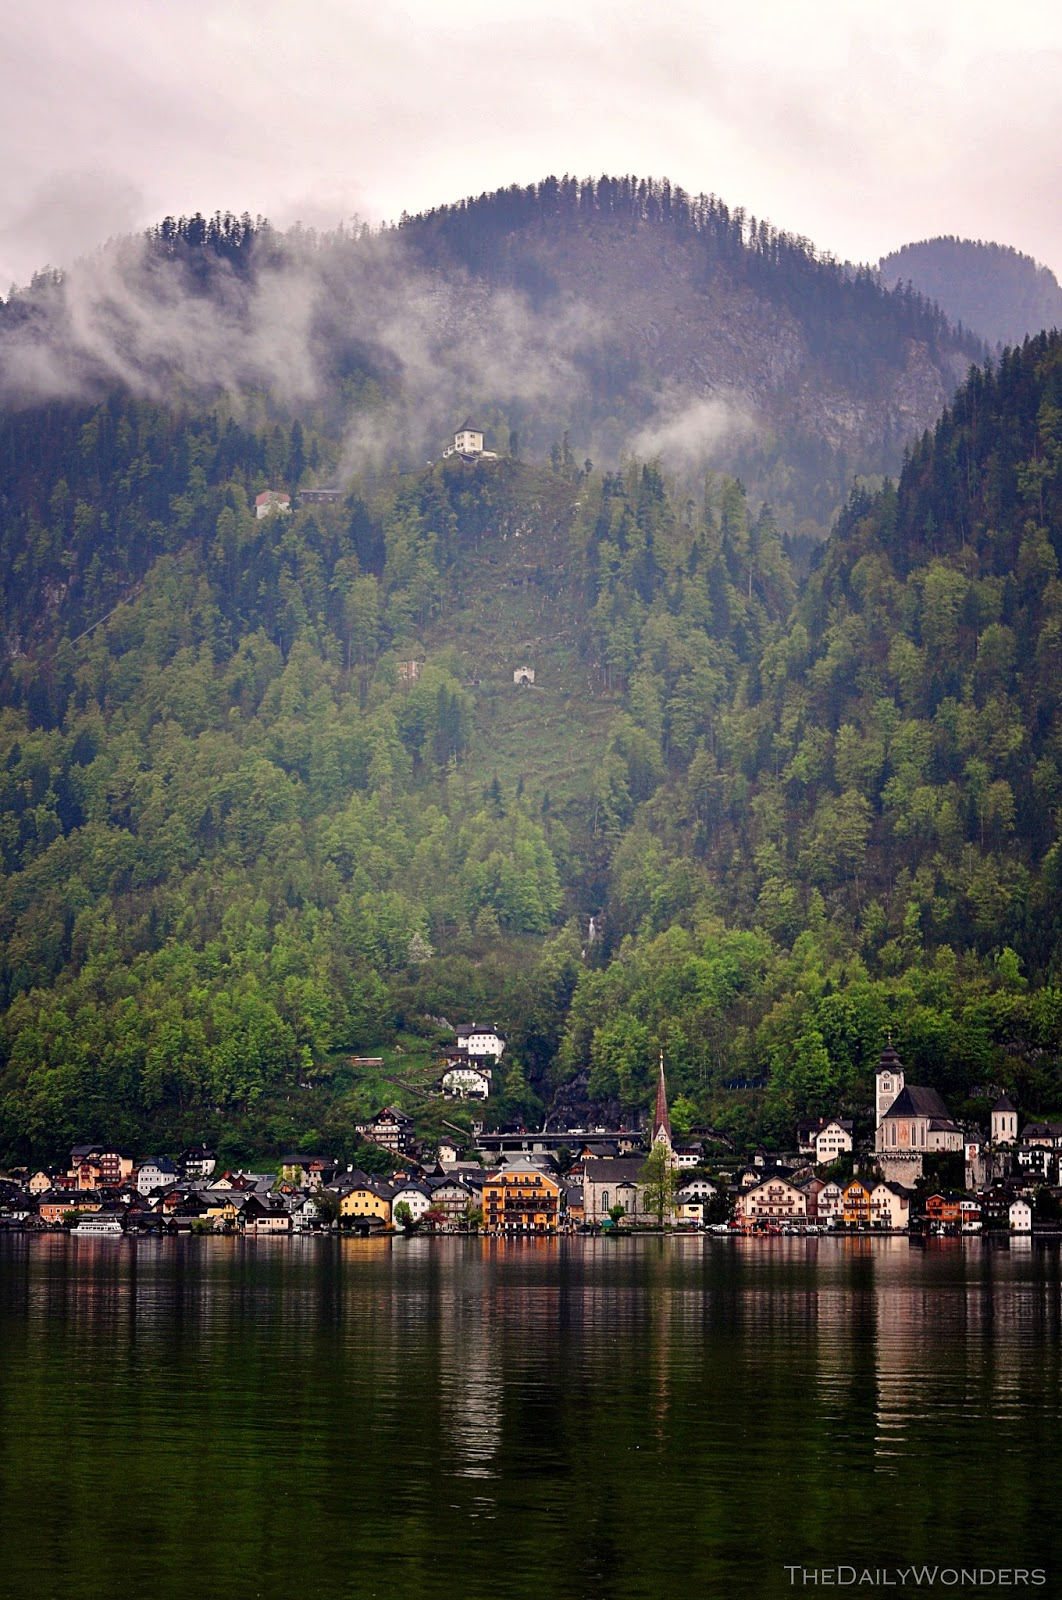 Zwiedzanie Hallstatt w Austrii. Fotorelacja, co warto zobaczyć w Hallstatt i piękne widoki. Sightseeing in Hallstatt in Austria. Photorelation, must see in Hallstatt and beautiful views.